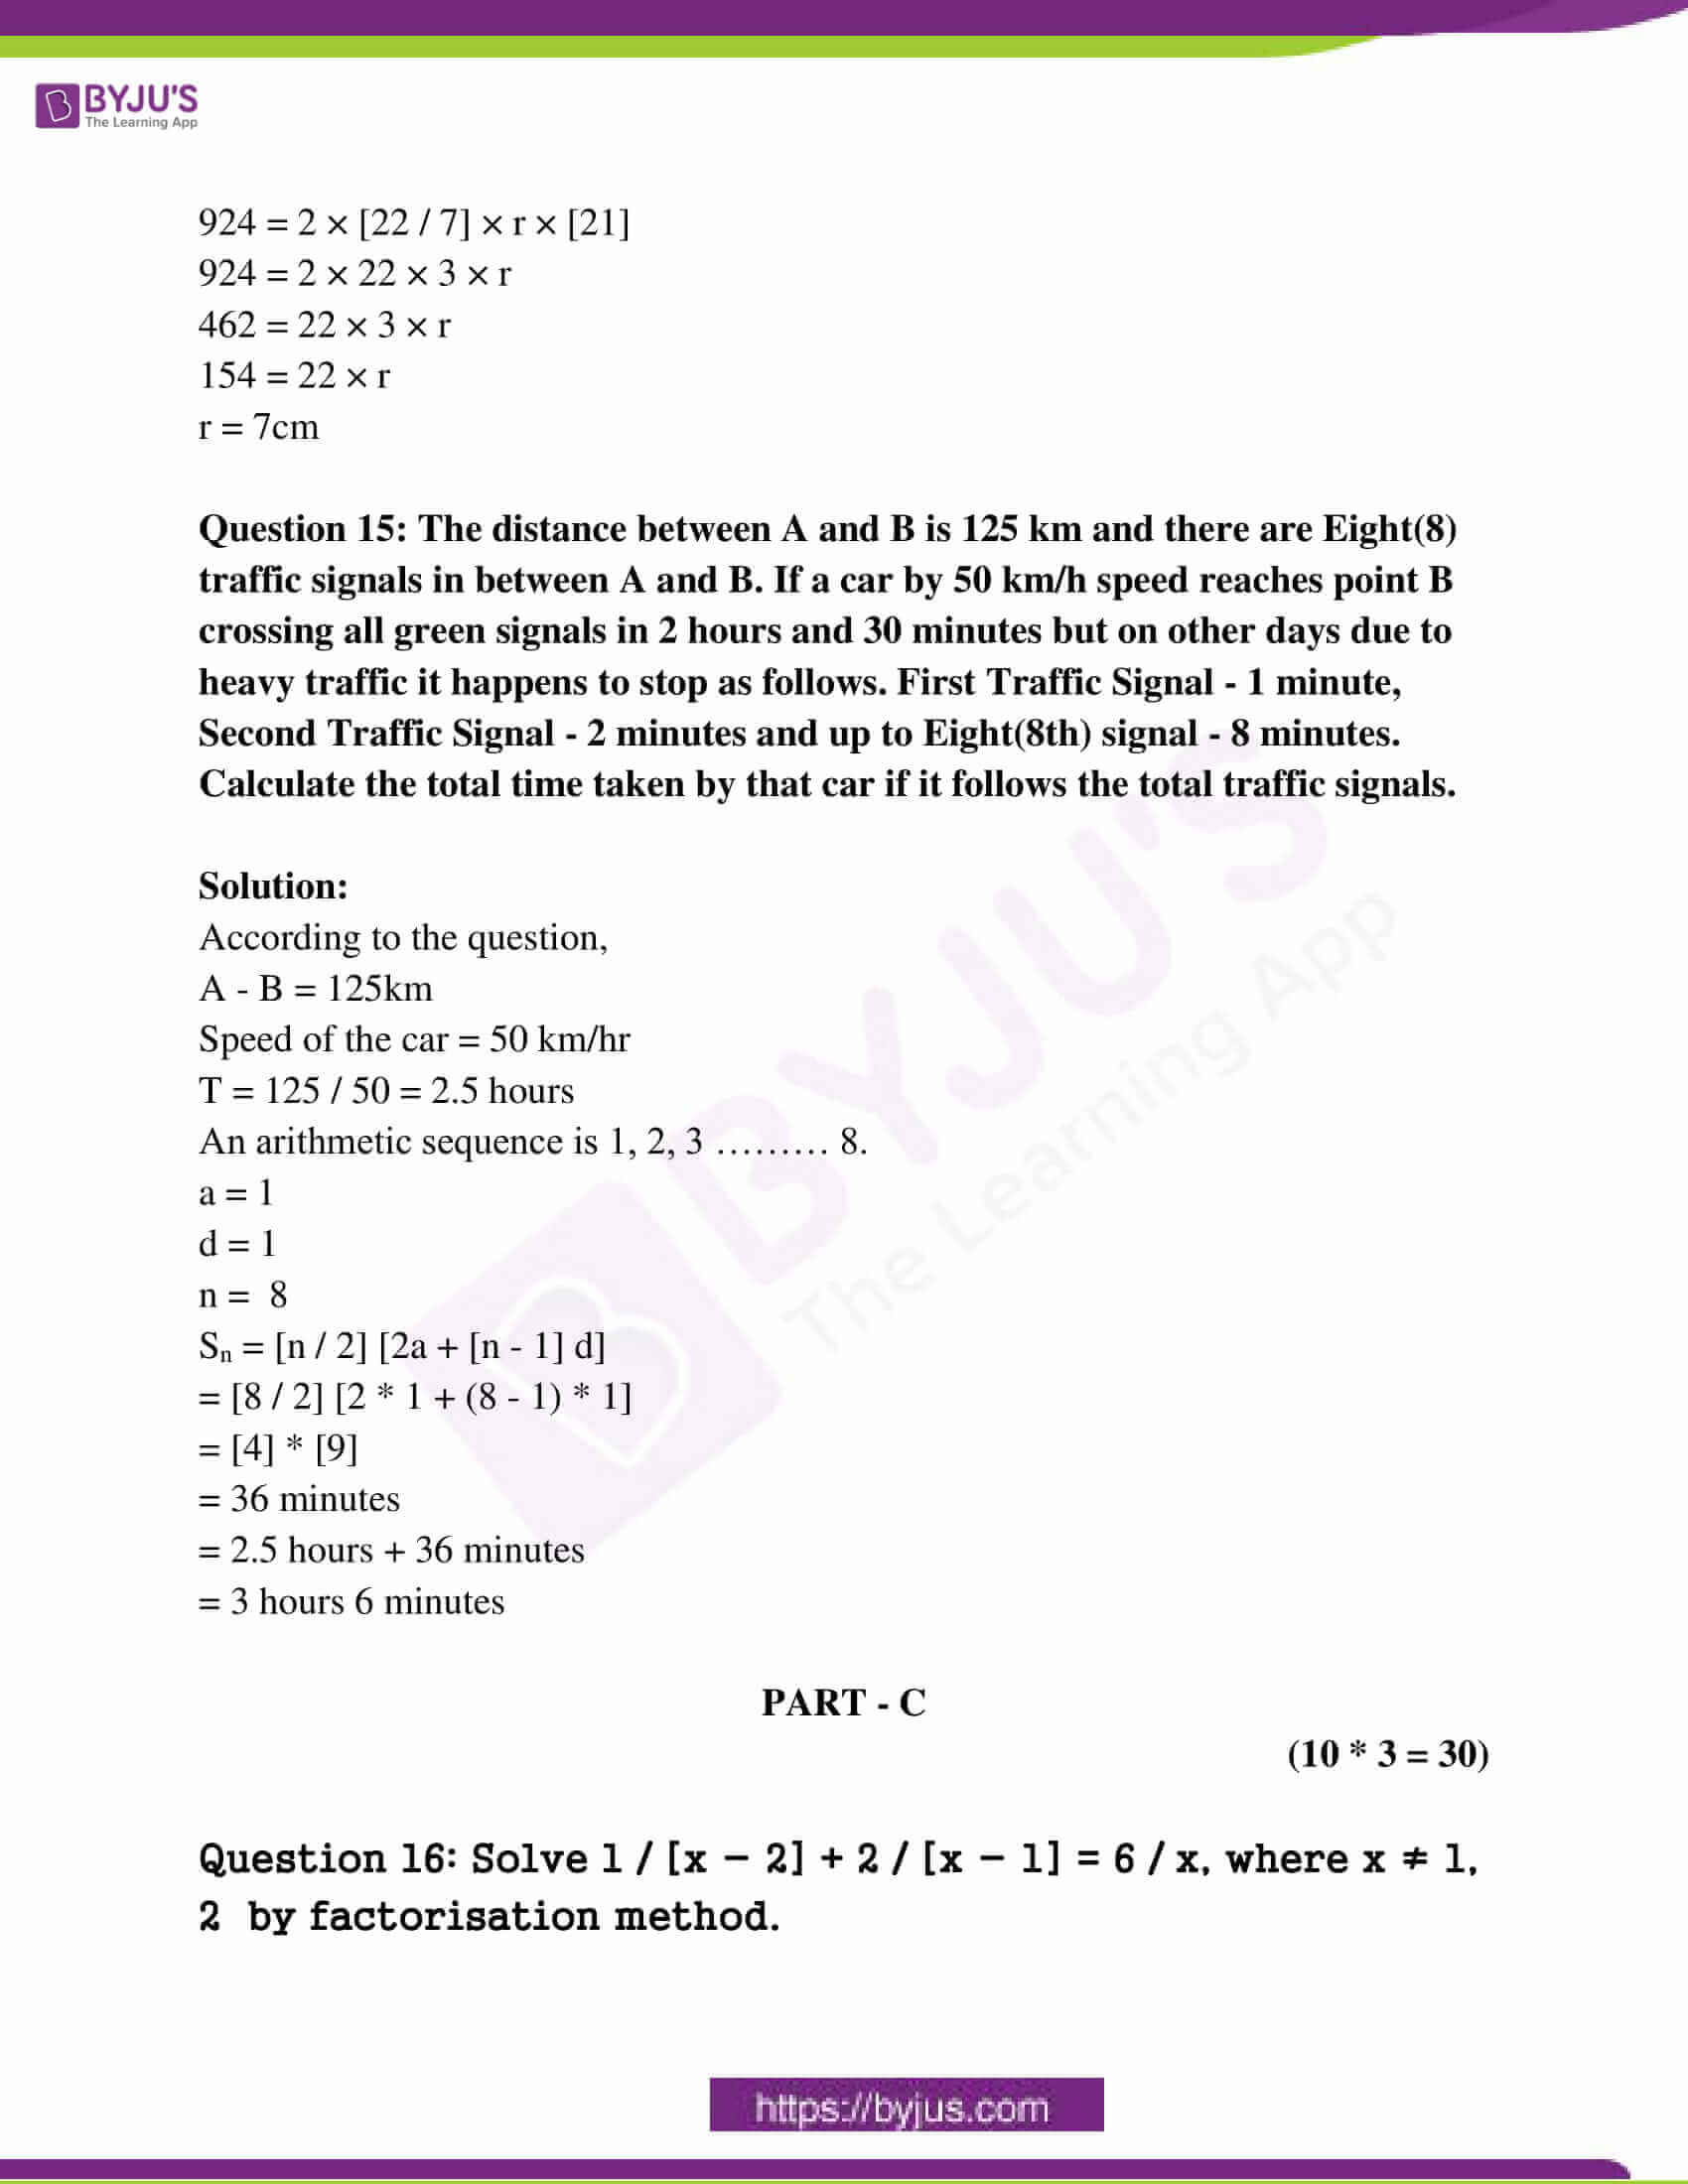 rajasthan board class 10 examination question paper sol march 2019 06